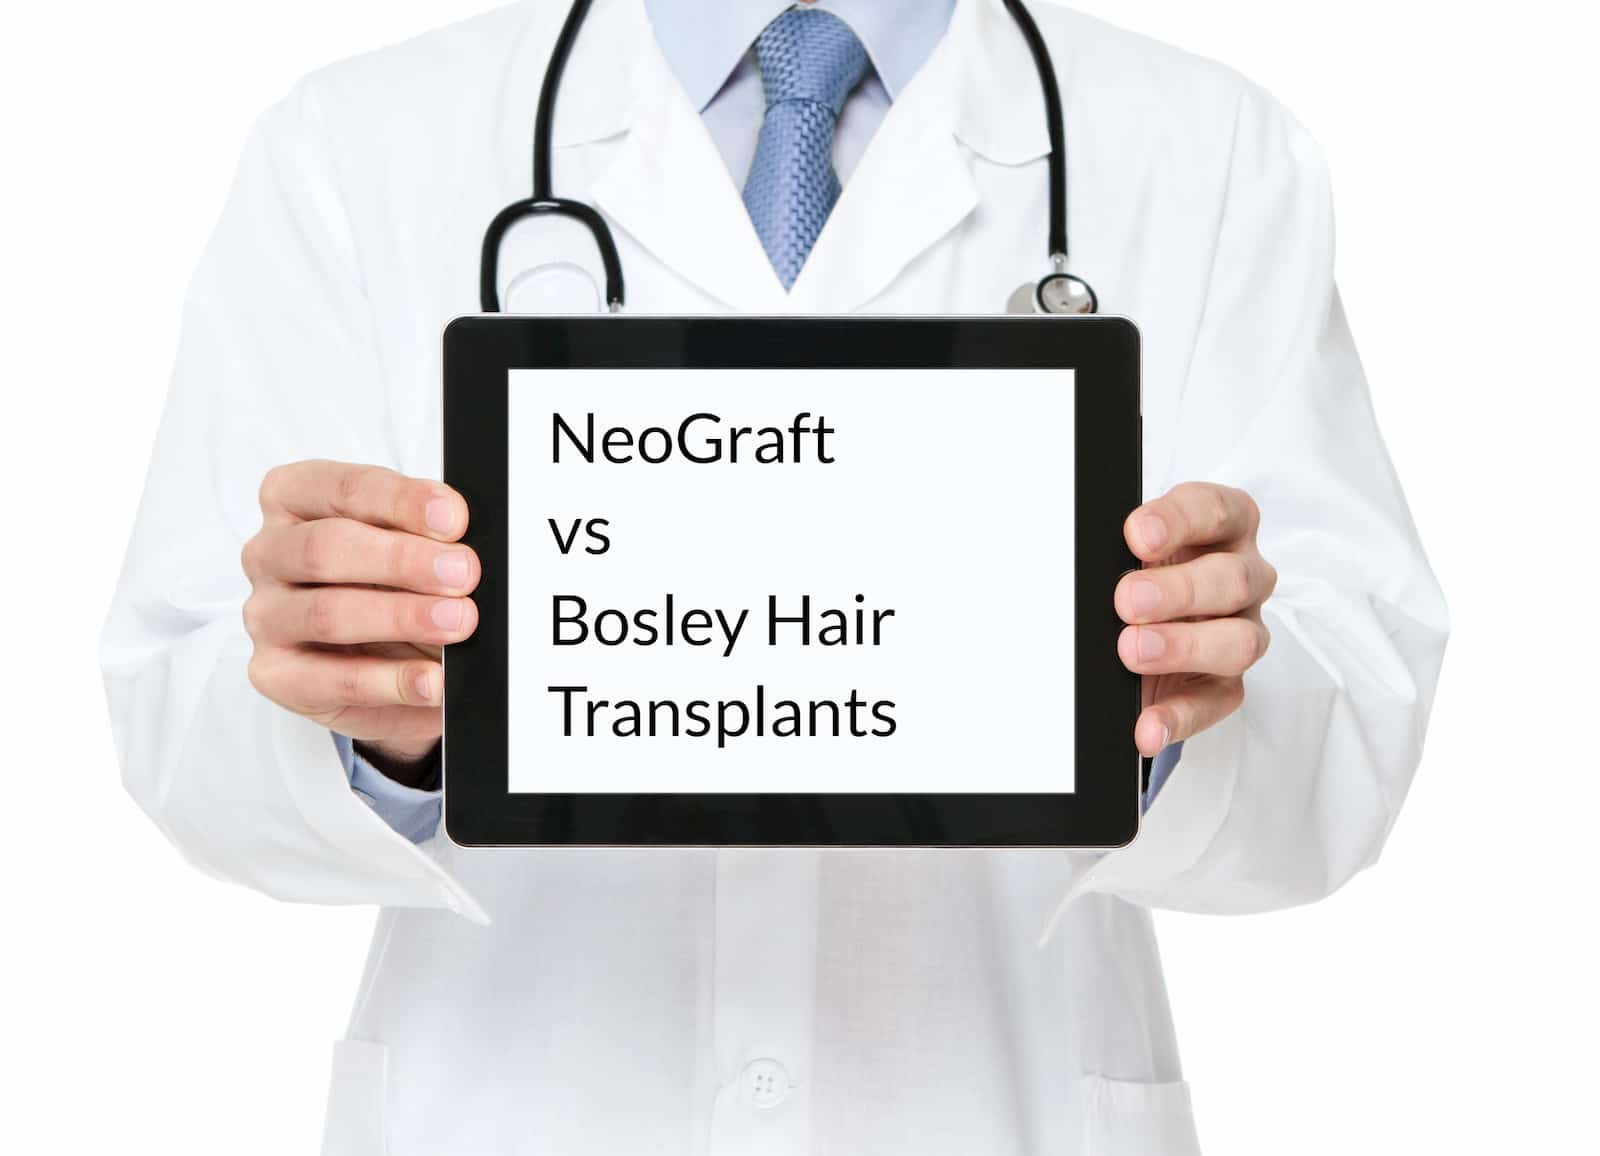 neograft vs bosley hair transplants in houston texas